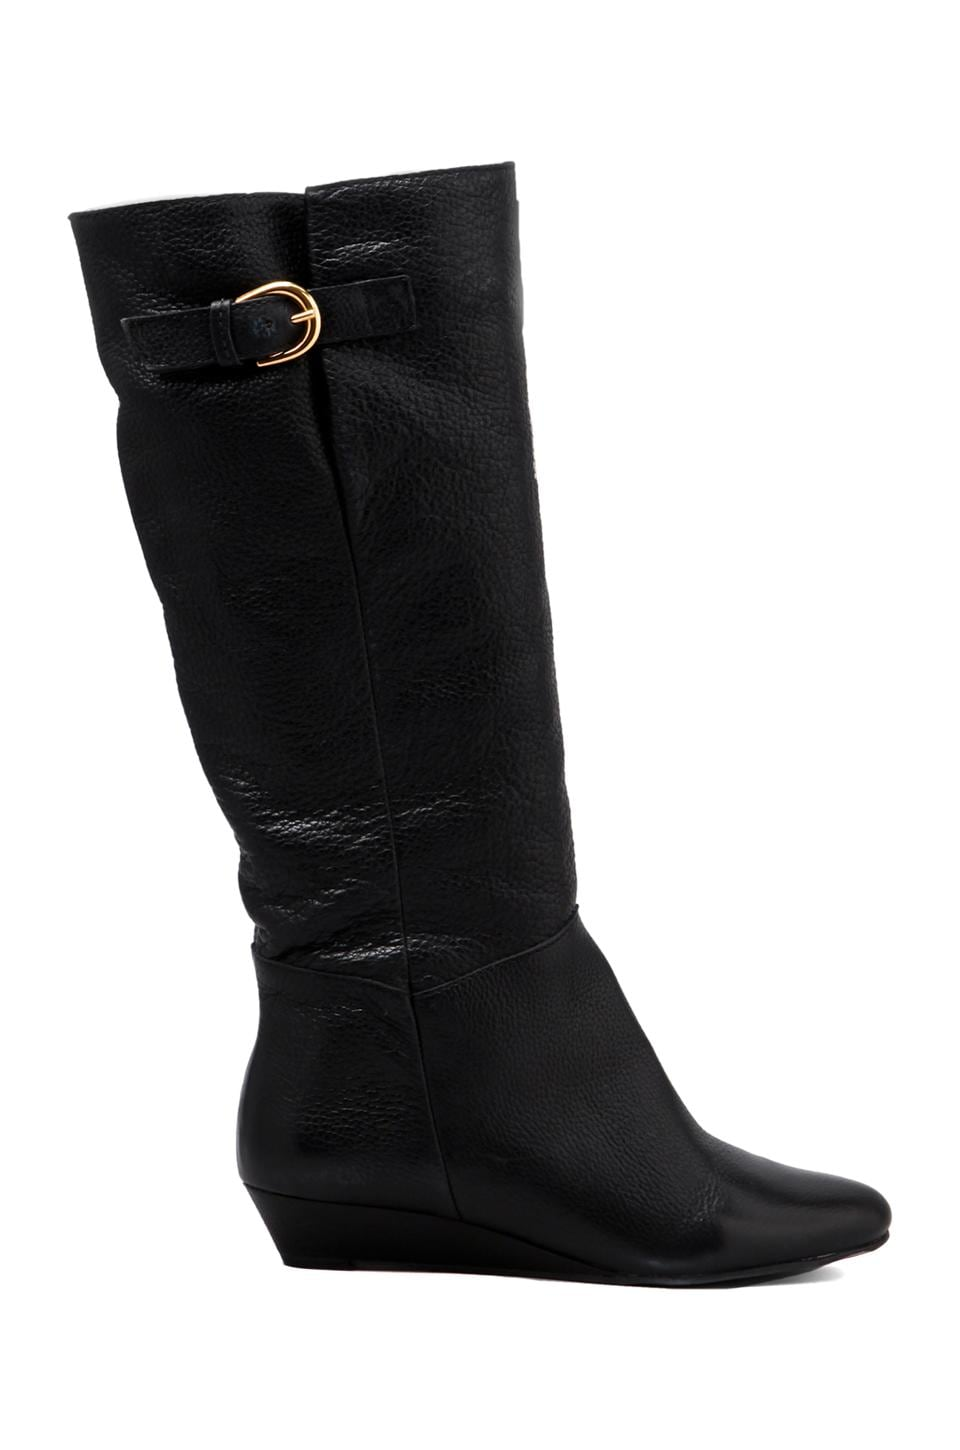 Steven Intyce Boot in Black Leather